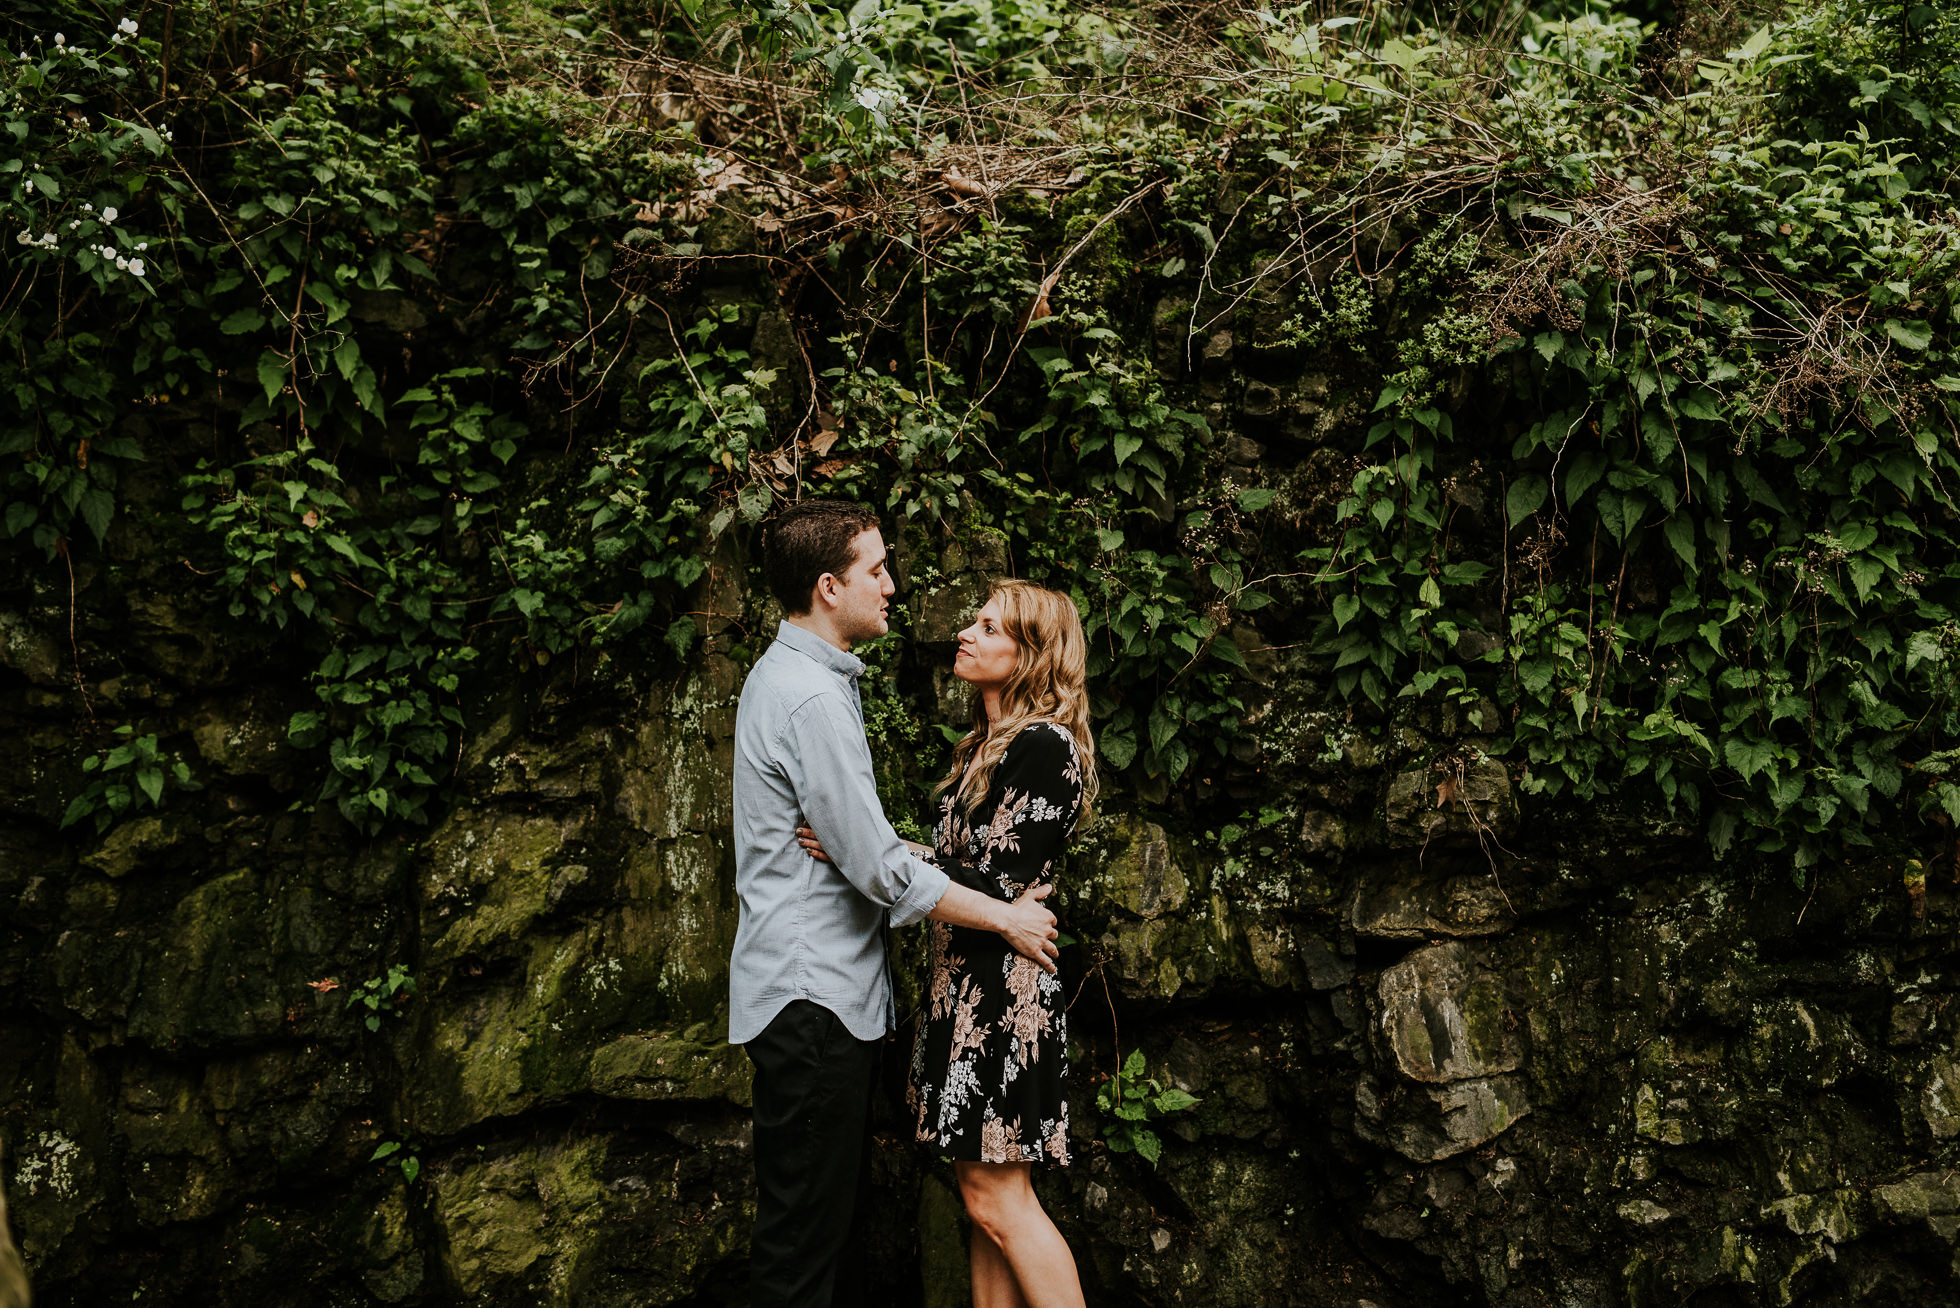 engagement photo outfit ideas photographed by Traverse the Tides3